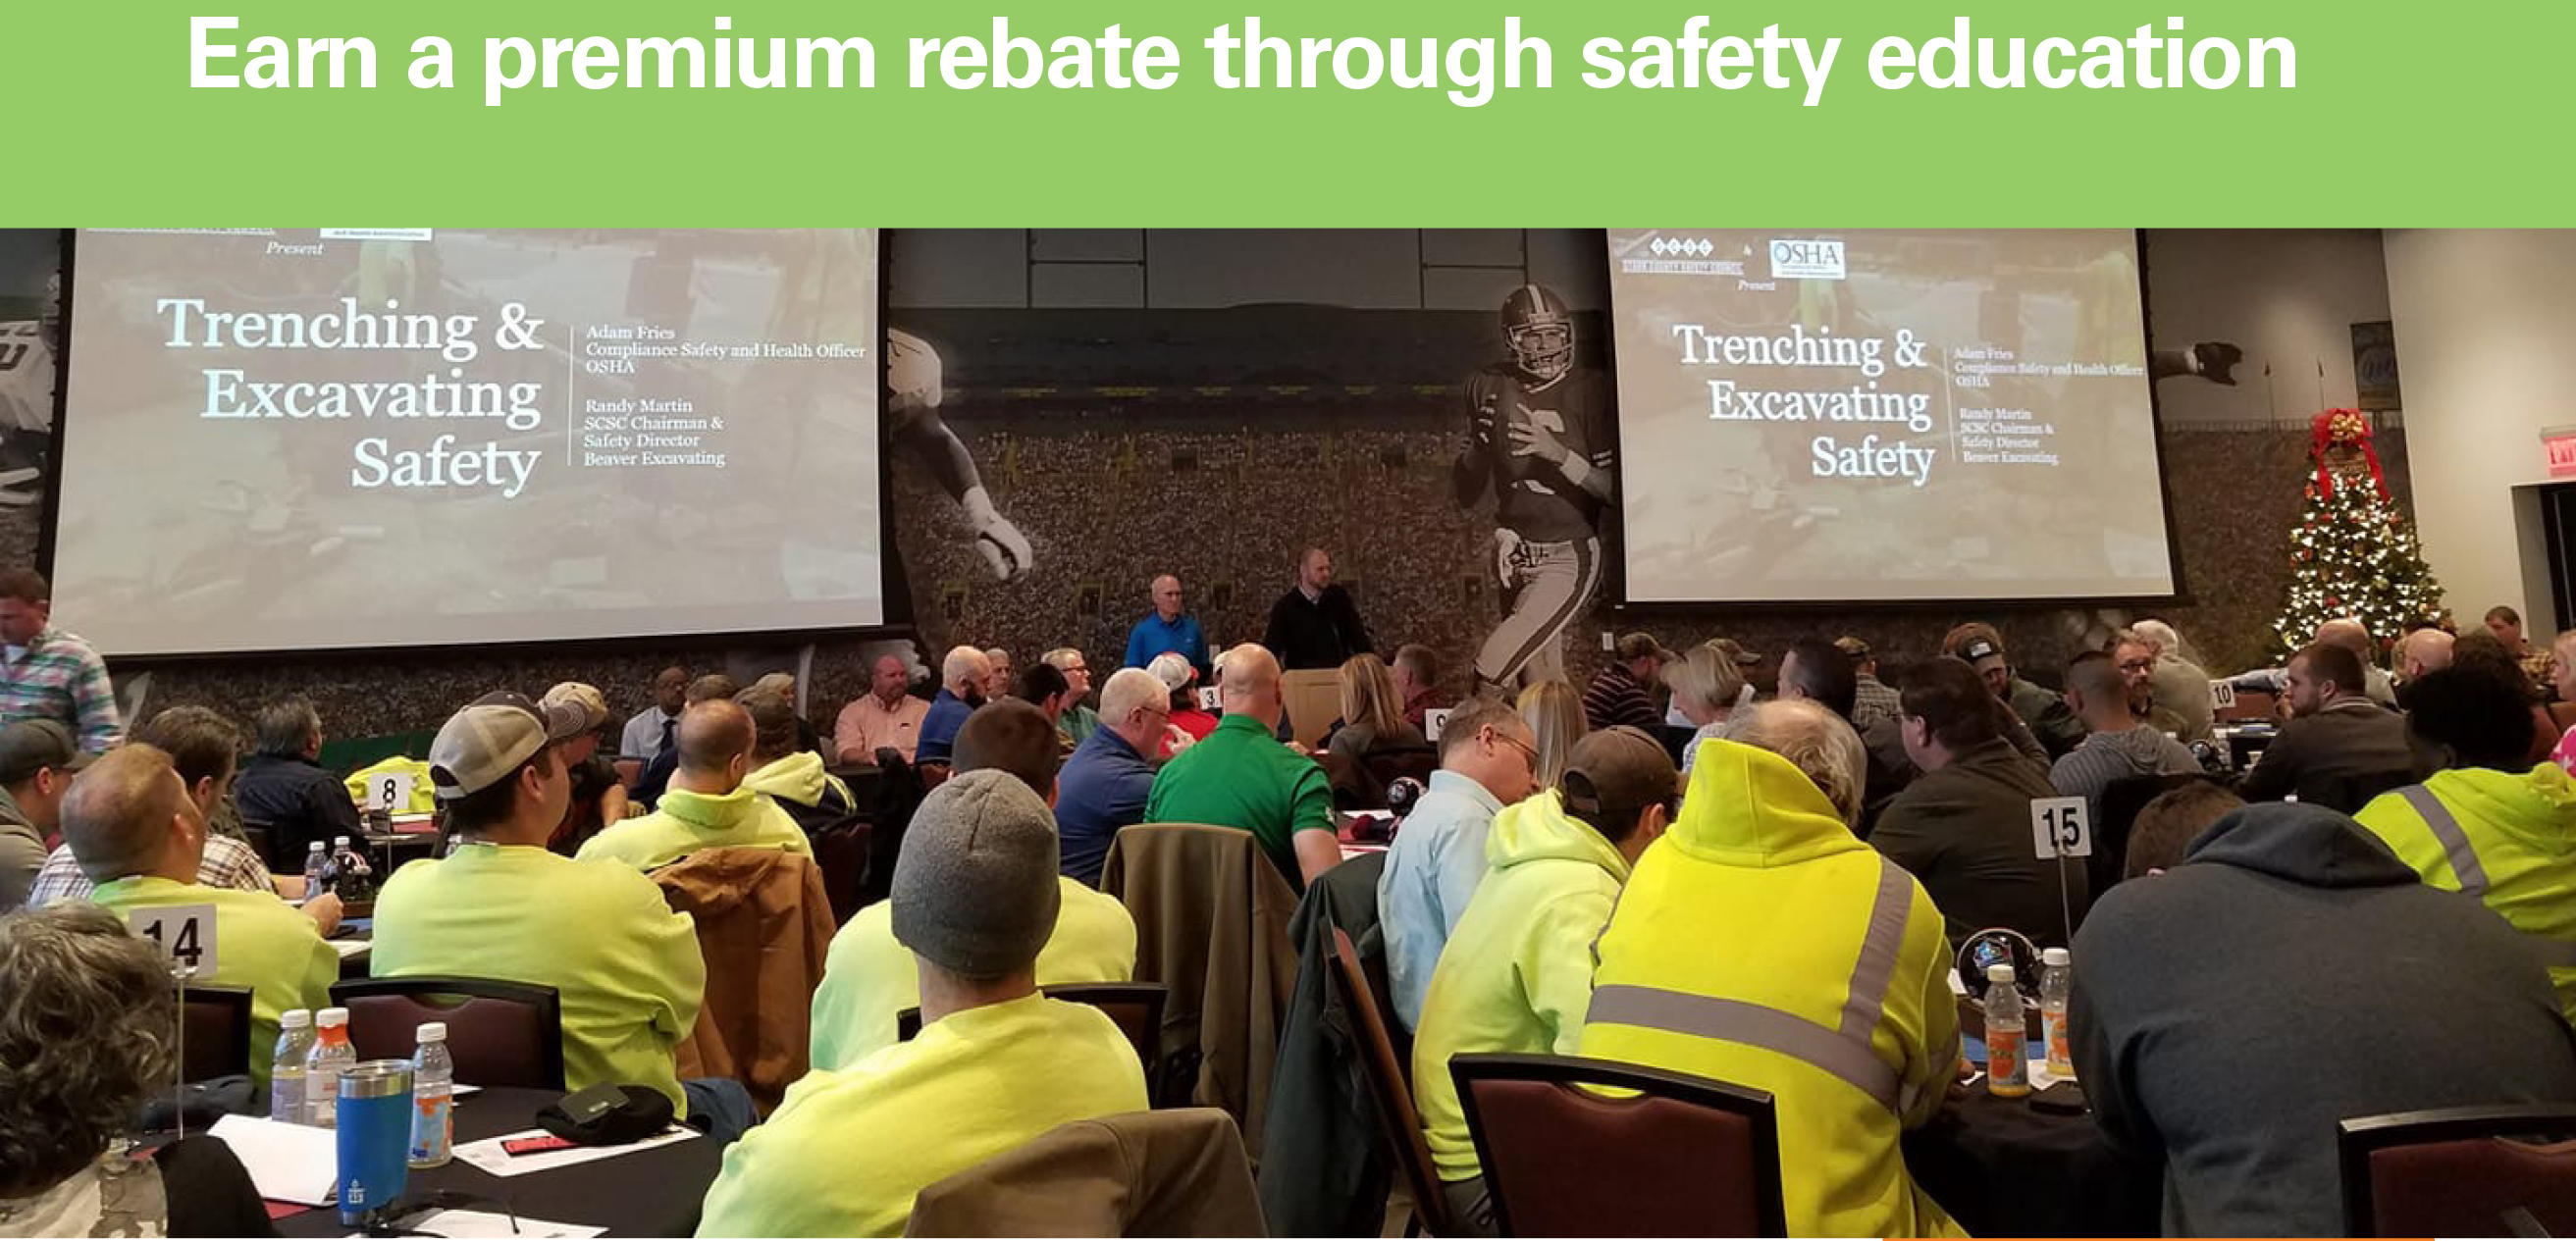 Earn a premium rebate through safety education